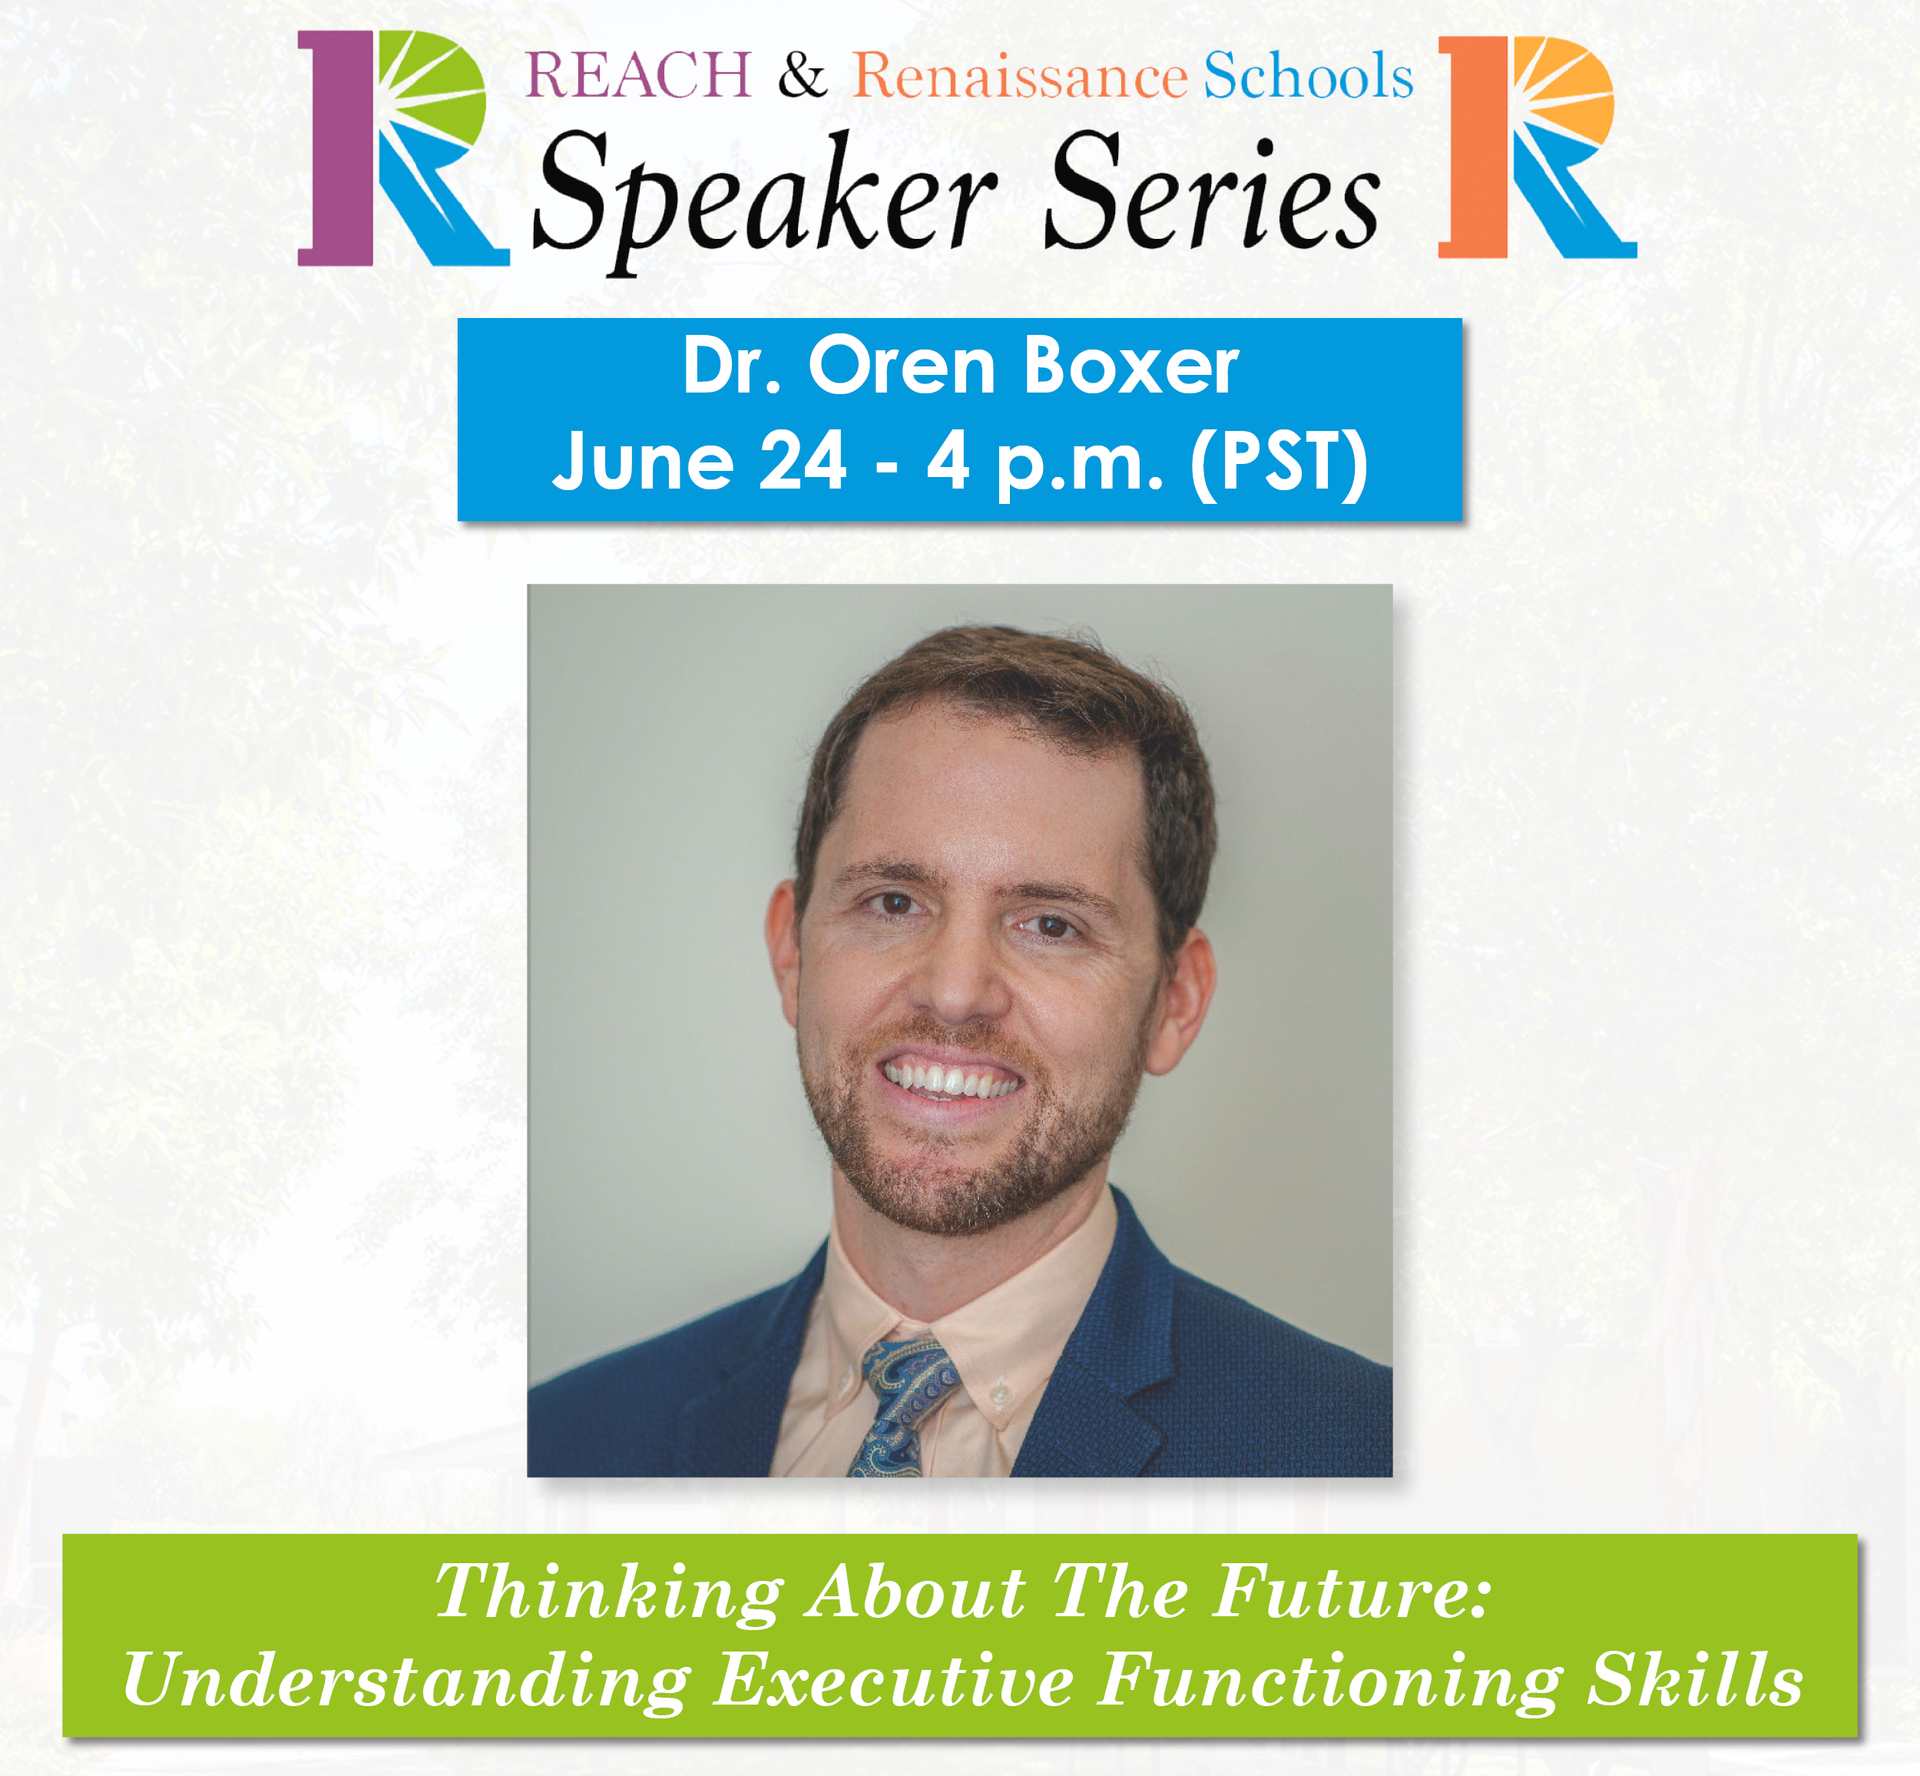 Dr. Oren Boxer Speaker Event - June 24 - 4 PM - Thinking About The Future: Understanding Executive Functioning Skills